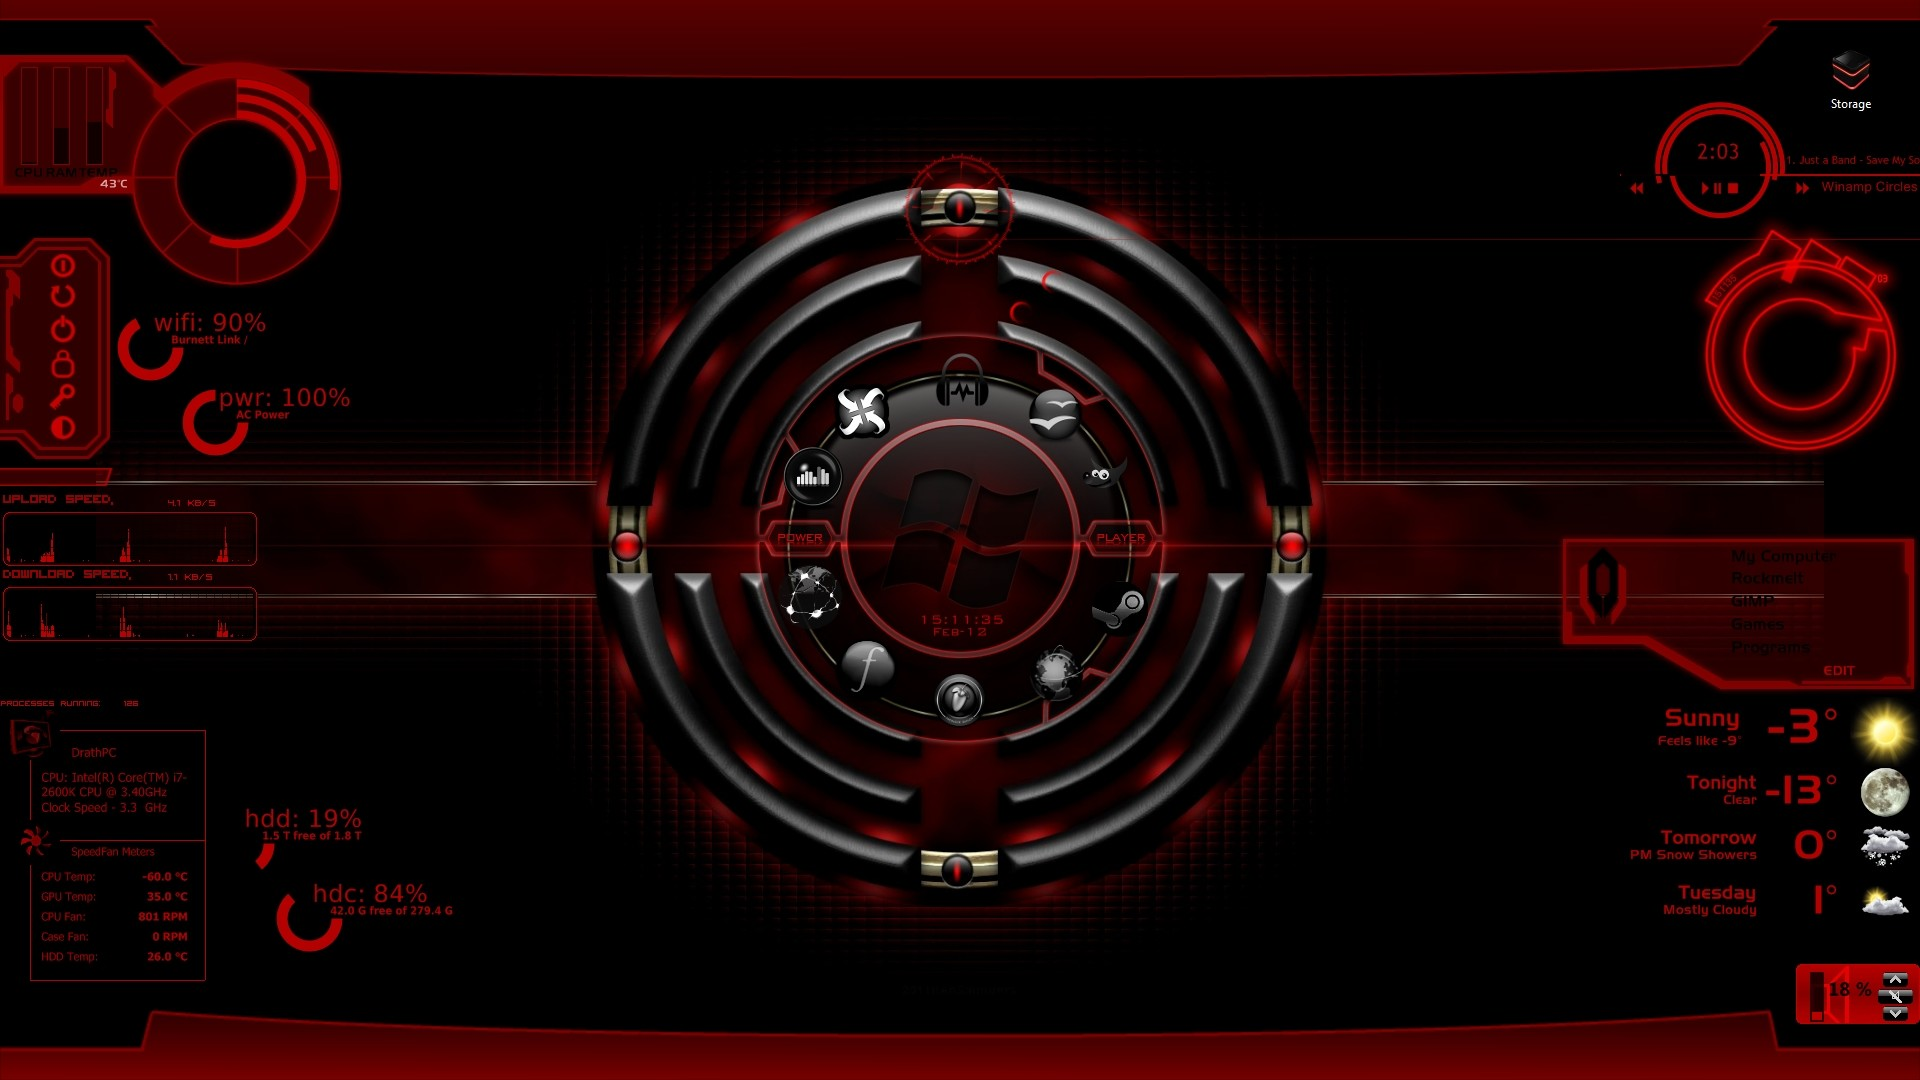 Res: 1920x1080, alienware wallpaper 1920x1200 - Black and Red Windows 7 Theme